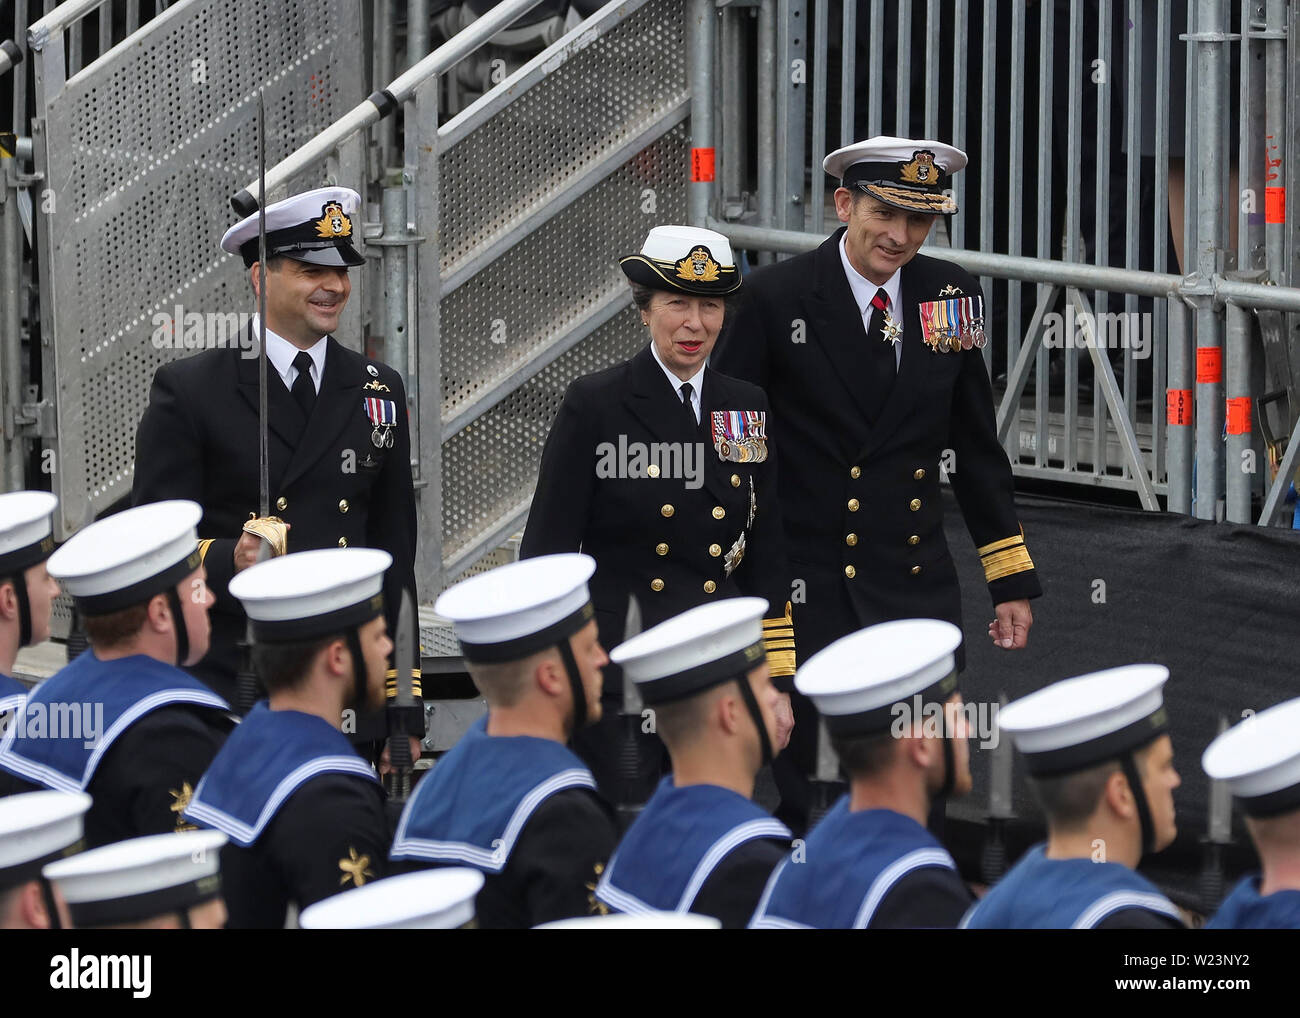 Faslane Naval Base marks its 50 year anniversary of the Continuous At Sea Deterrent (CASD) on the River Clyde. - Stock Image